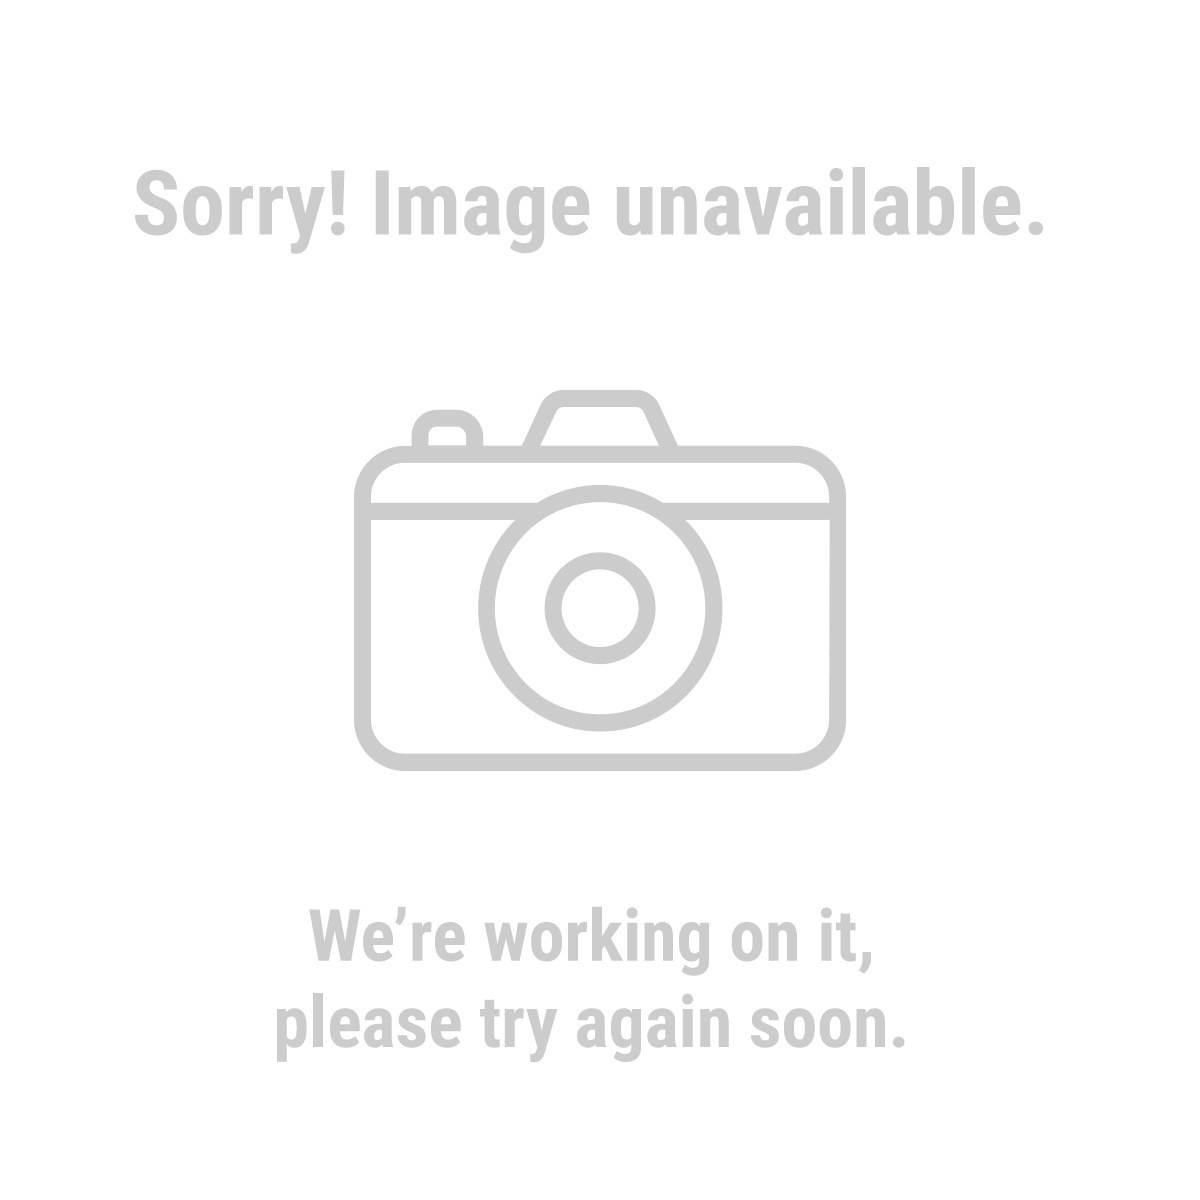 Central Pneumatic 61490 10 gal. 2.5 HP 125 PSI Oil Lube Air Compressor